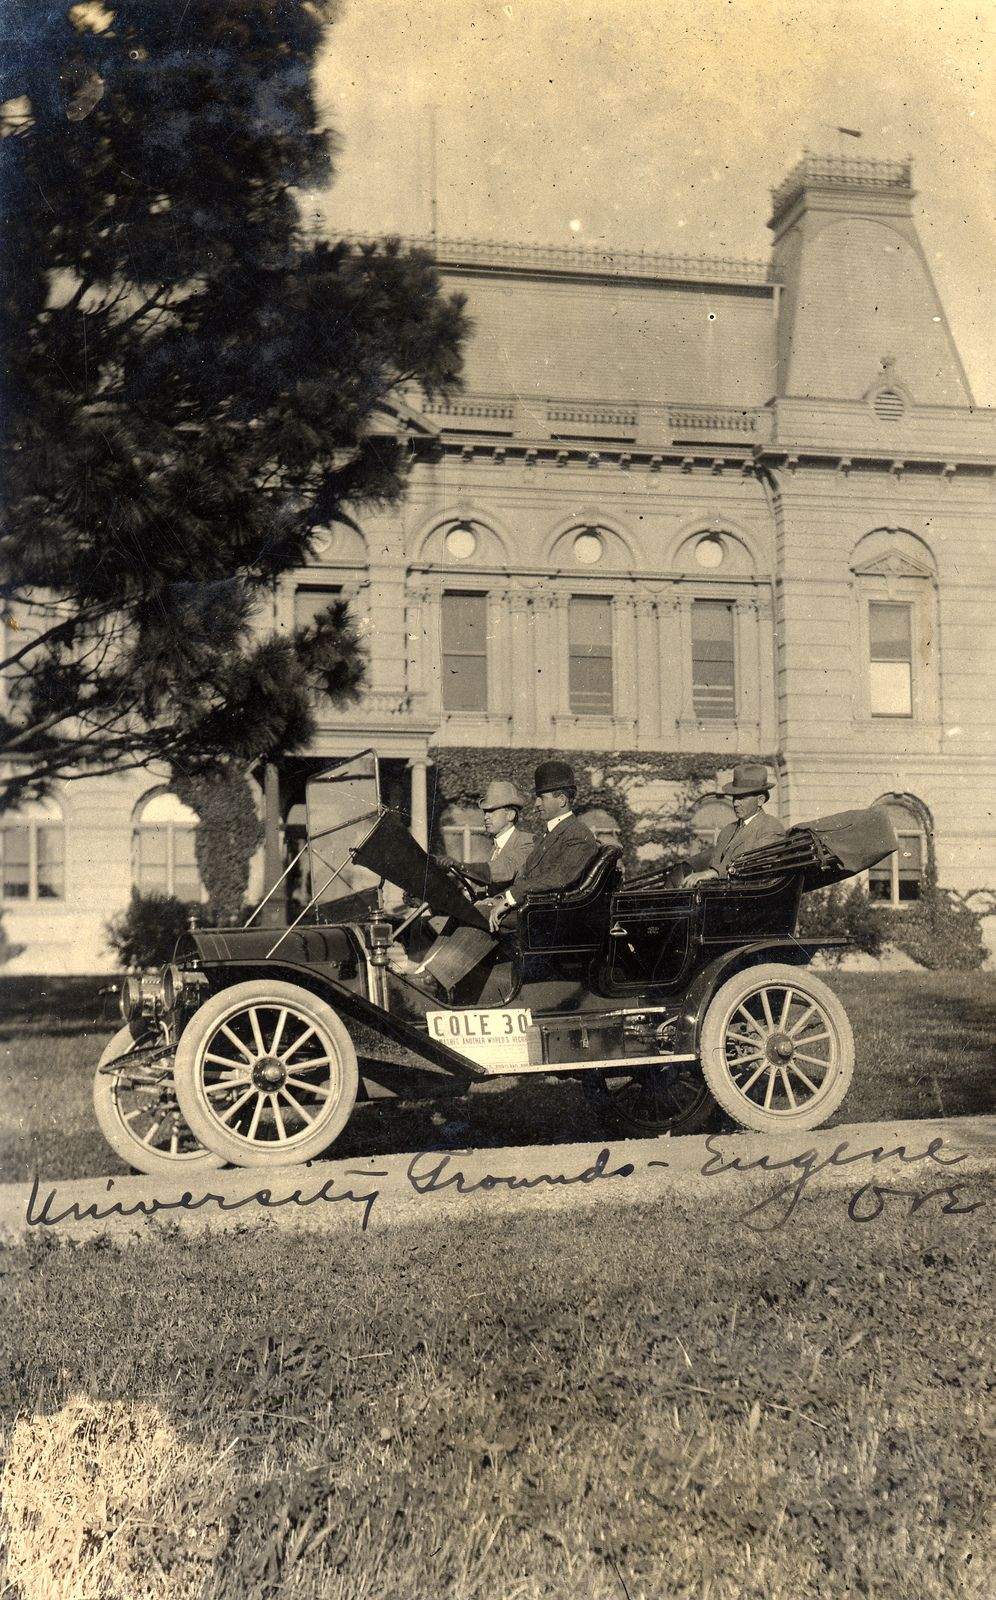 30 Great Pictures And Ideas Of Decorative Ceramic Tiles: Men In A Cole 30 Car On The University Of Oregon, Circa